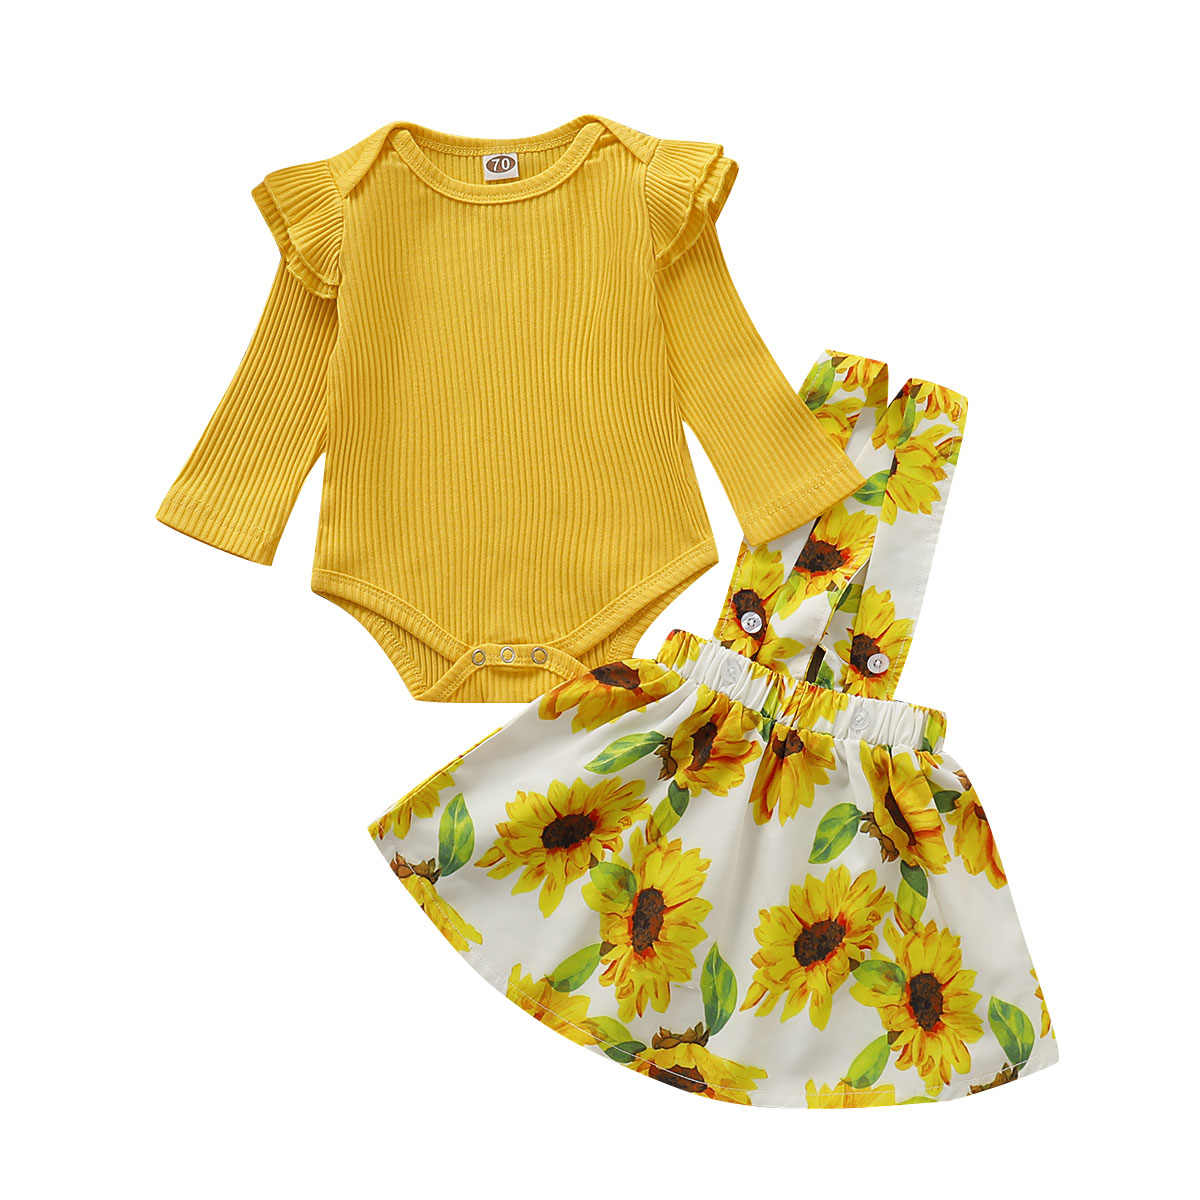 2PCS Toddler Baby Girls Autumn Clothes Sets Yellow Cotton Knit Romper Tops Sunflower Strap Dress Outfits